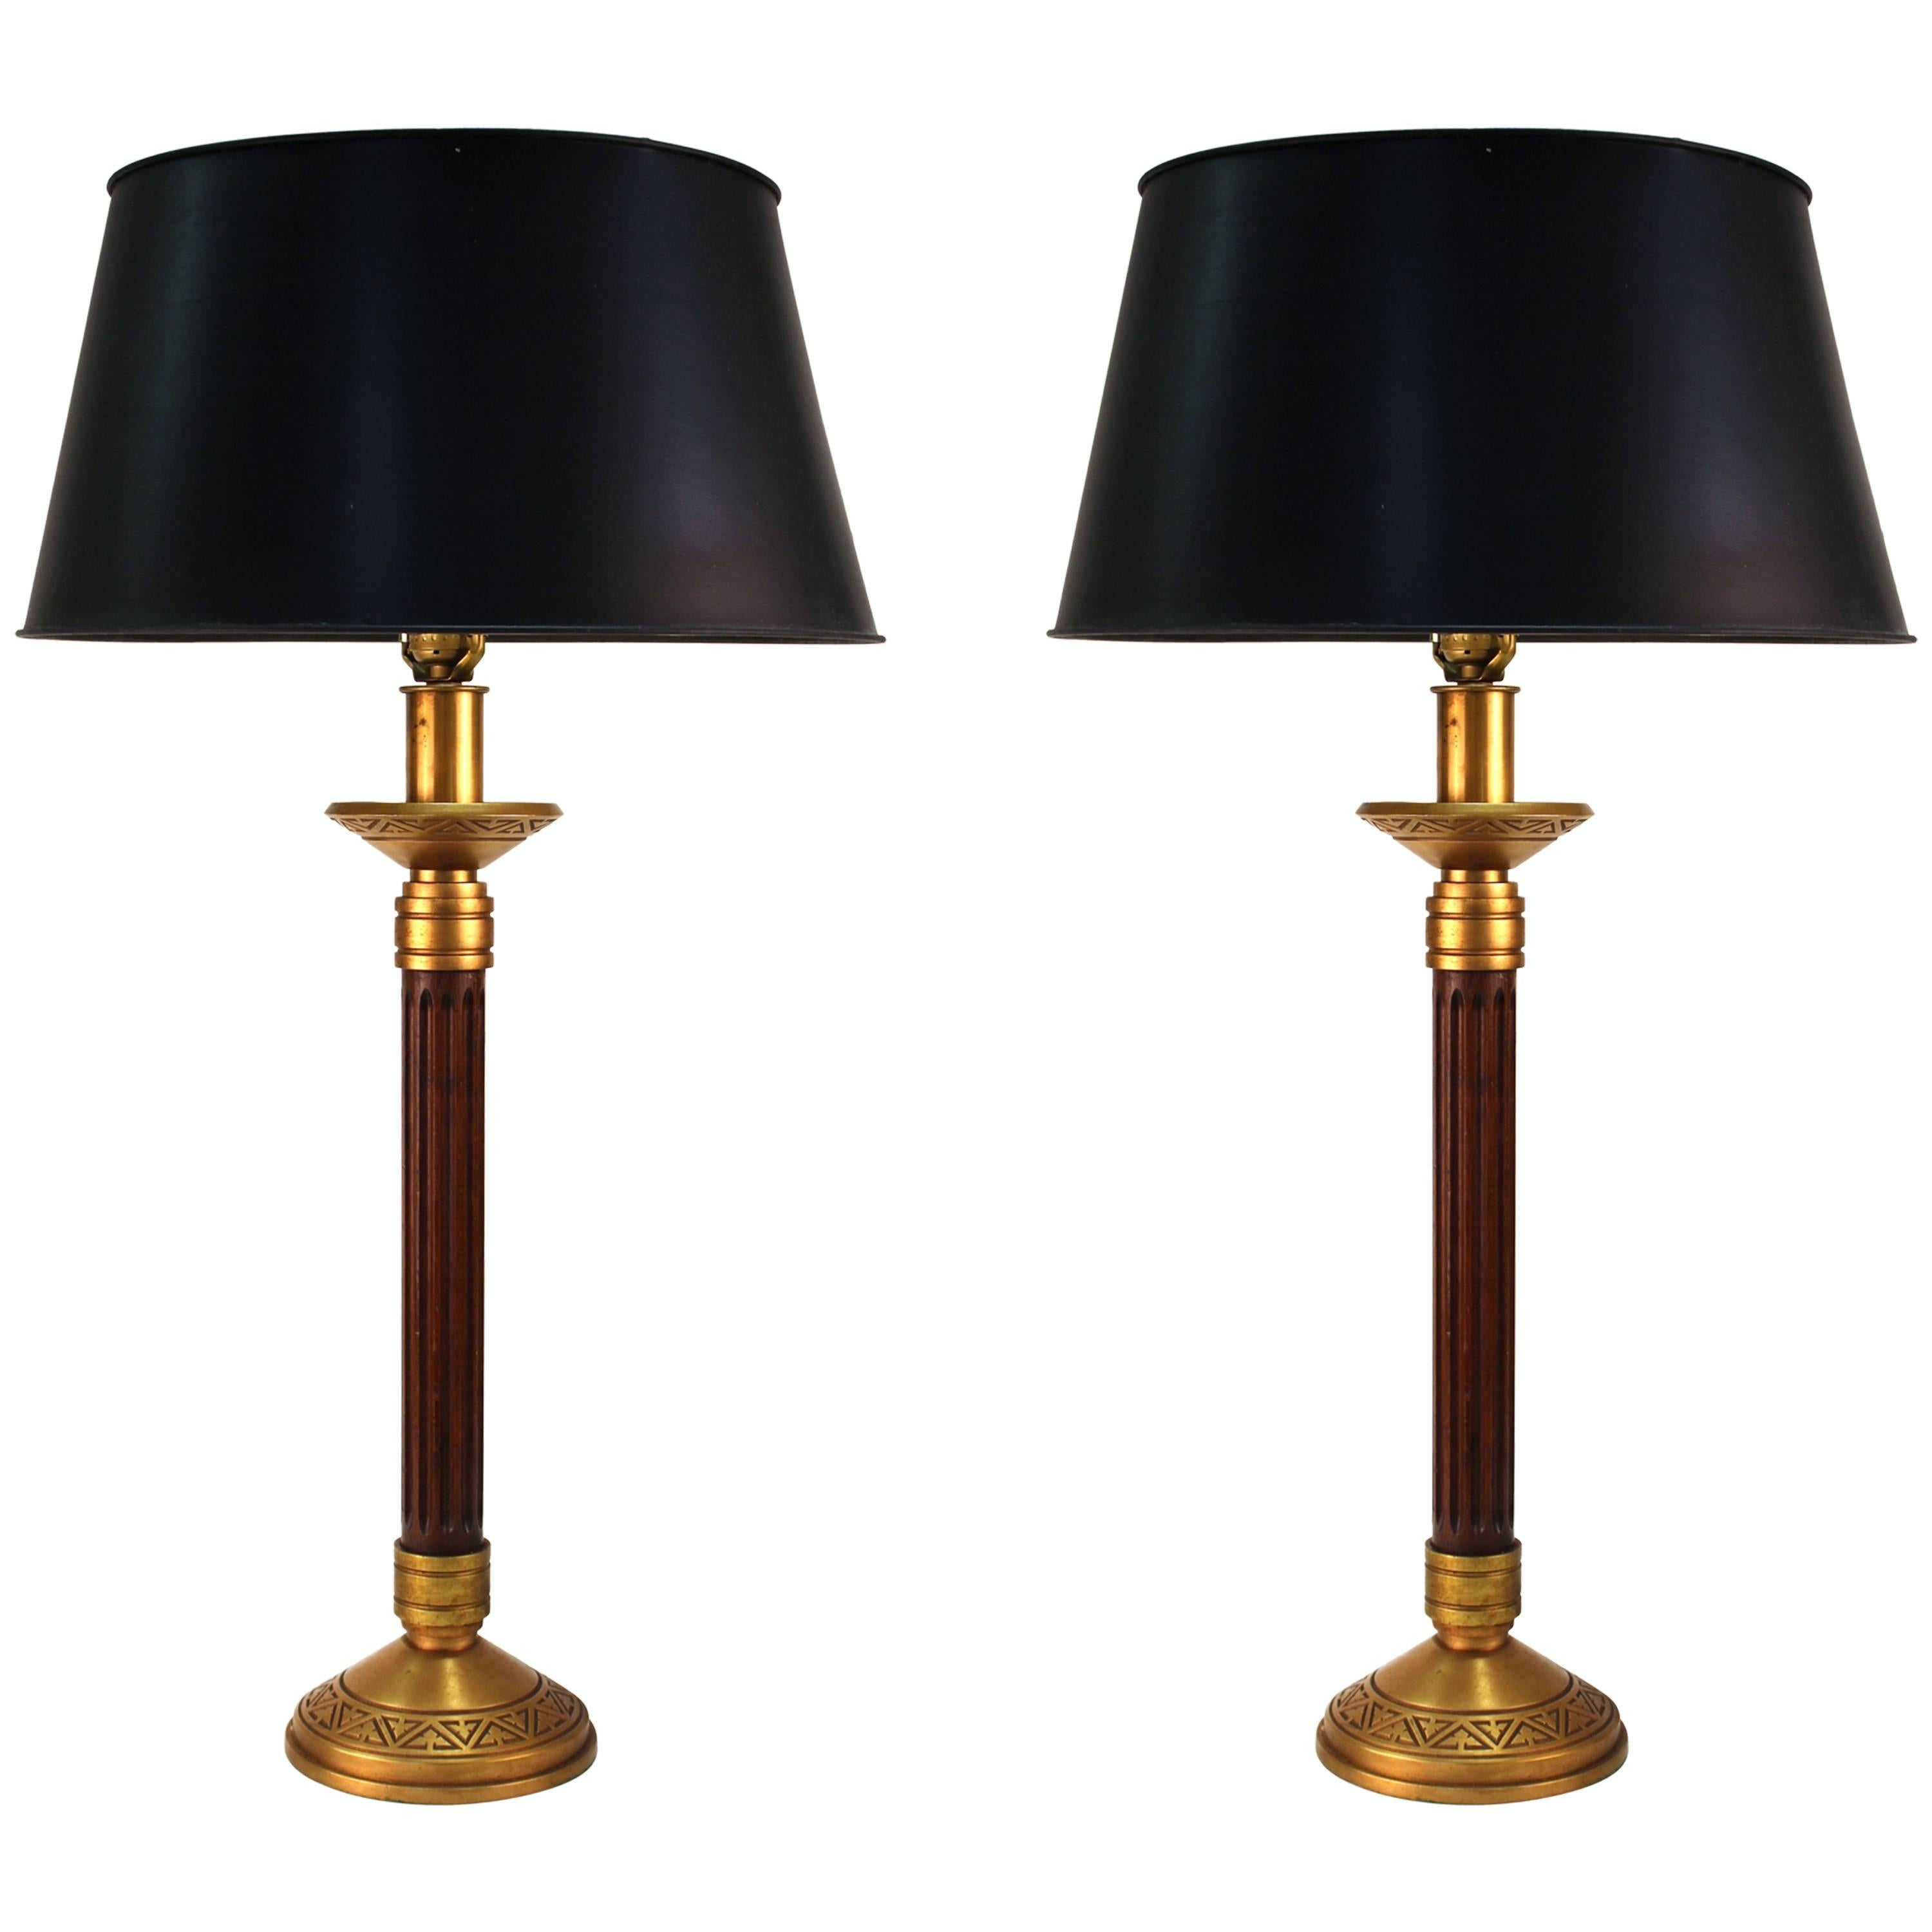 Mid Century Modern Wood Column And Greek Key Table Lamps With Black Shades  For Sale